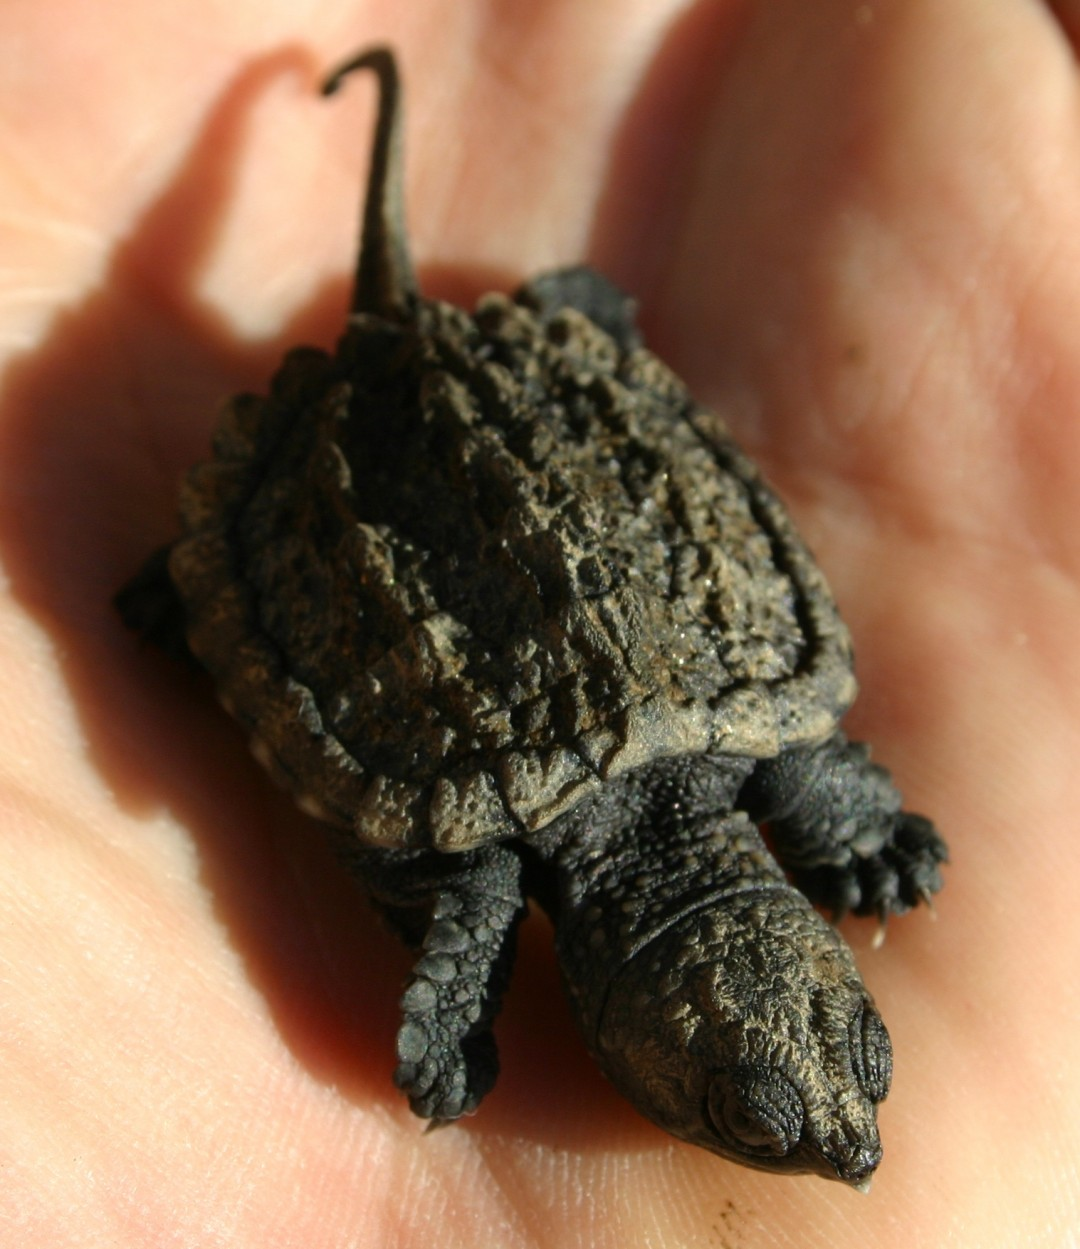 Cropped Baby Alligator Turtle - All Turtles